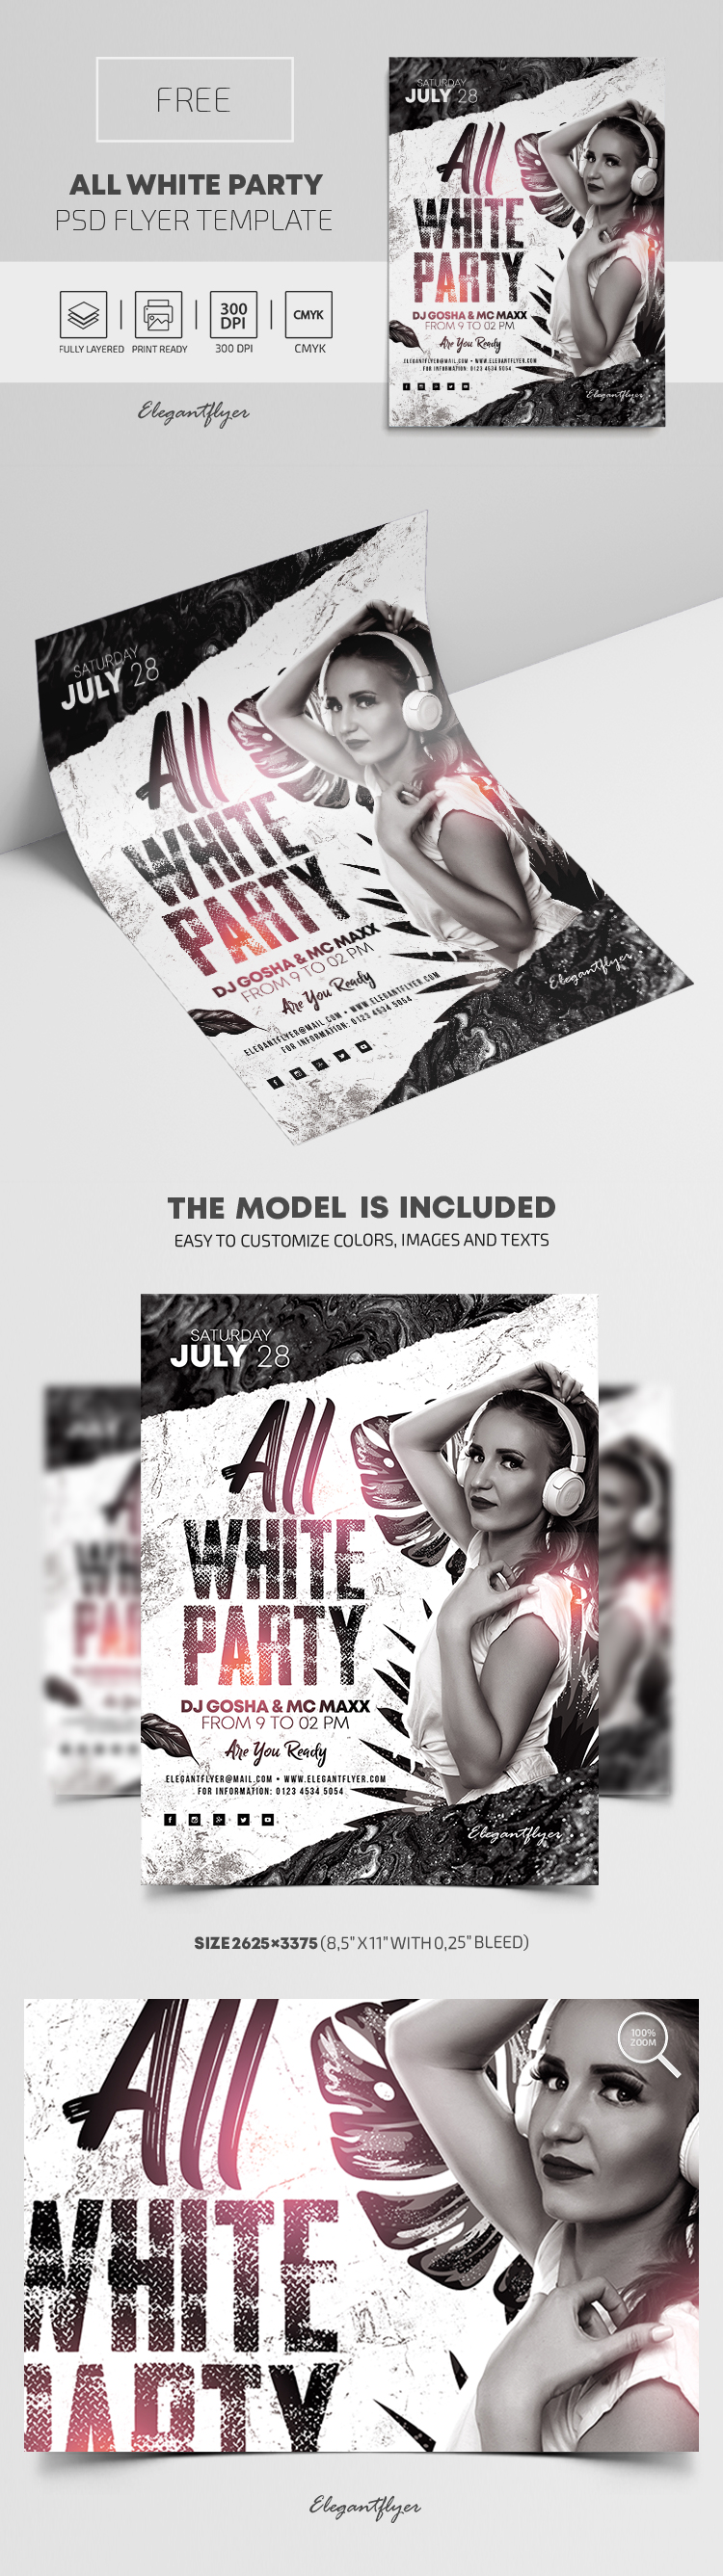 All White Party – Free PSD Flyer Template